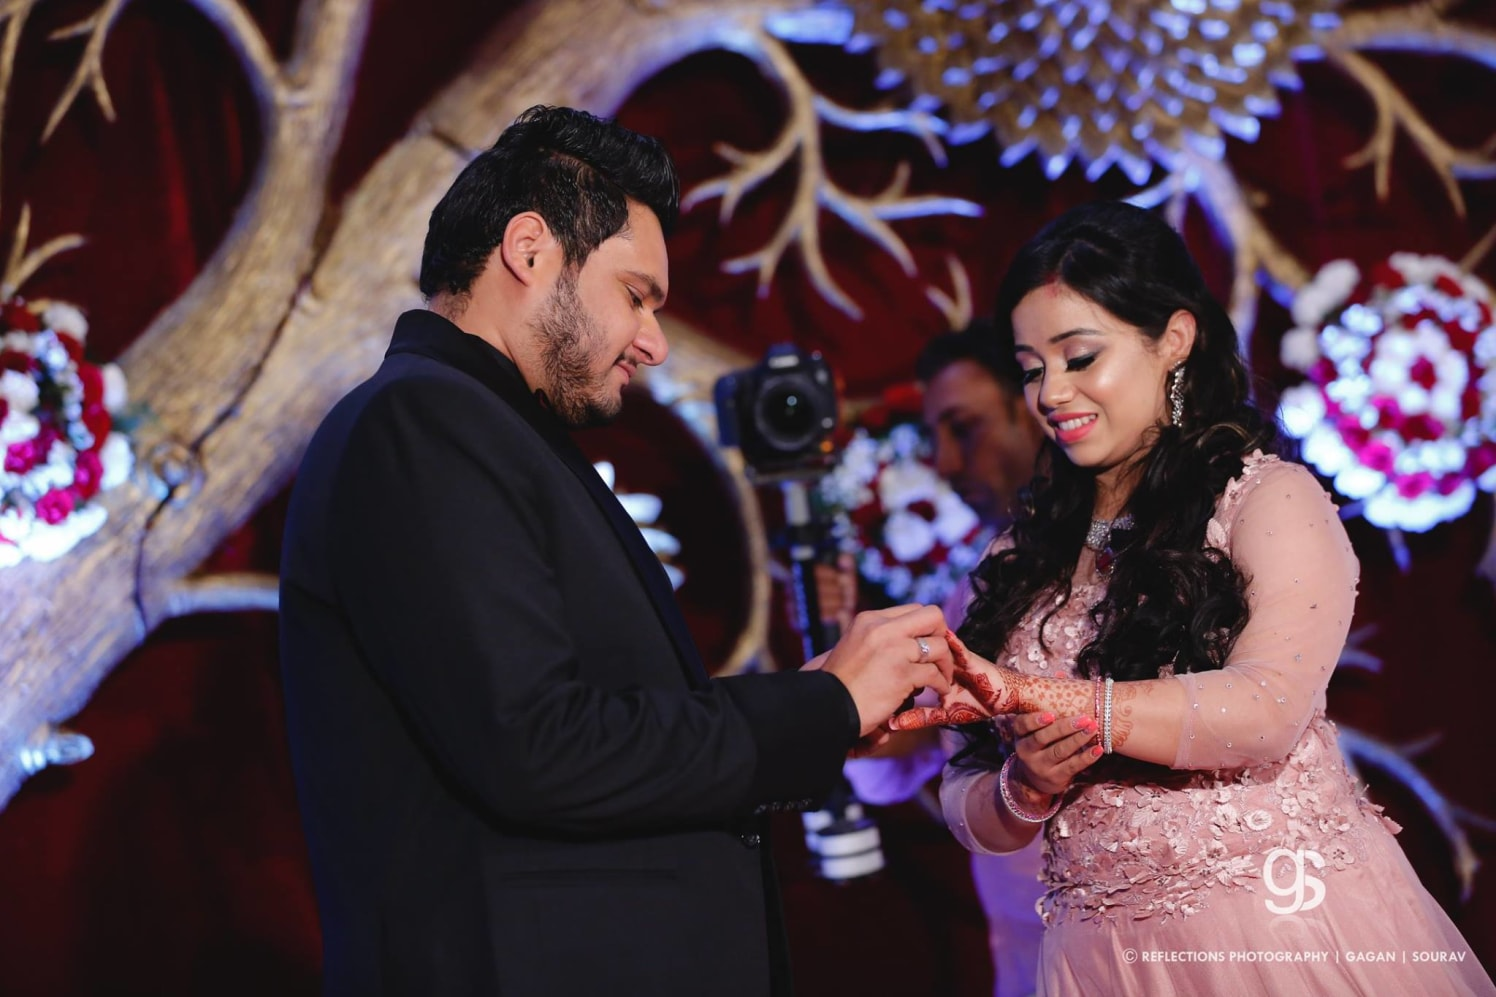 Handcuff of love! by Reflections Photography Wedding-photography | Weddings Photos & Ideas